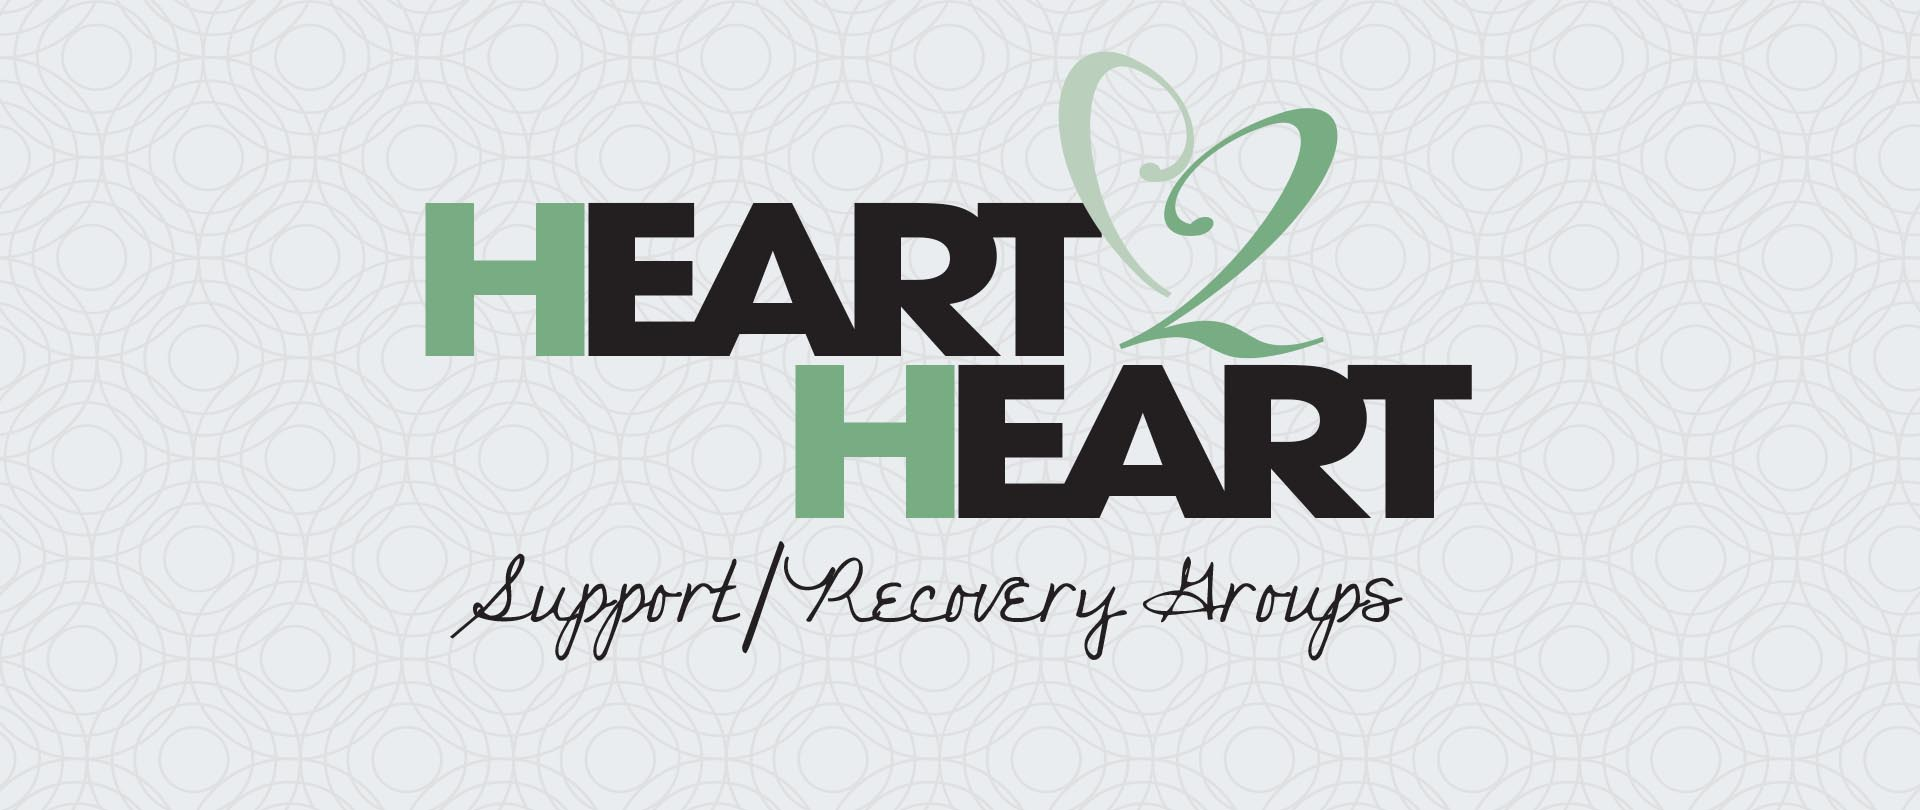 Heart 2 Heart